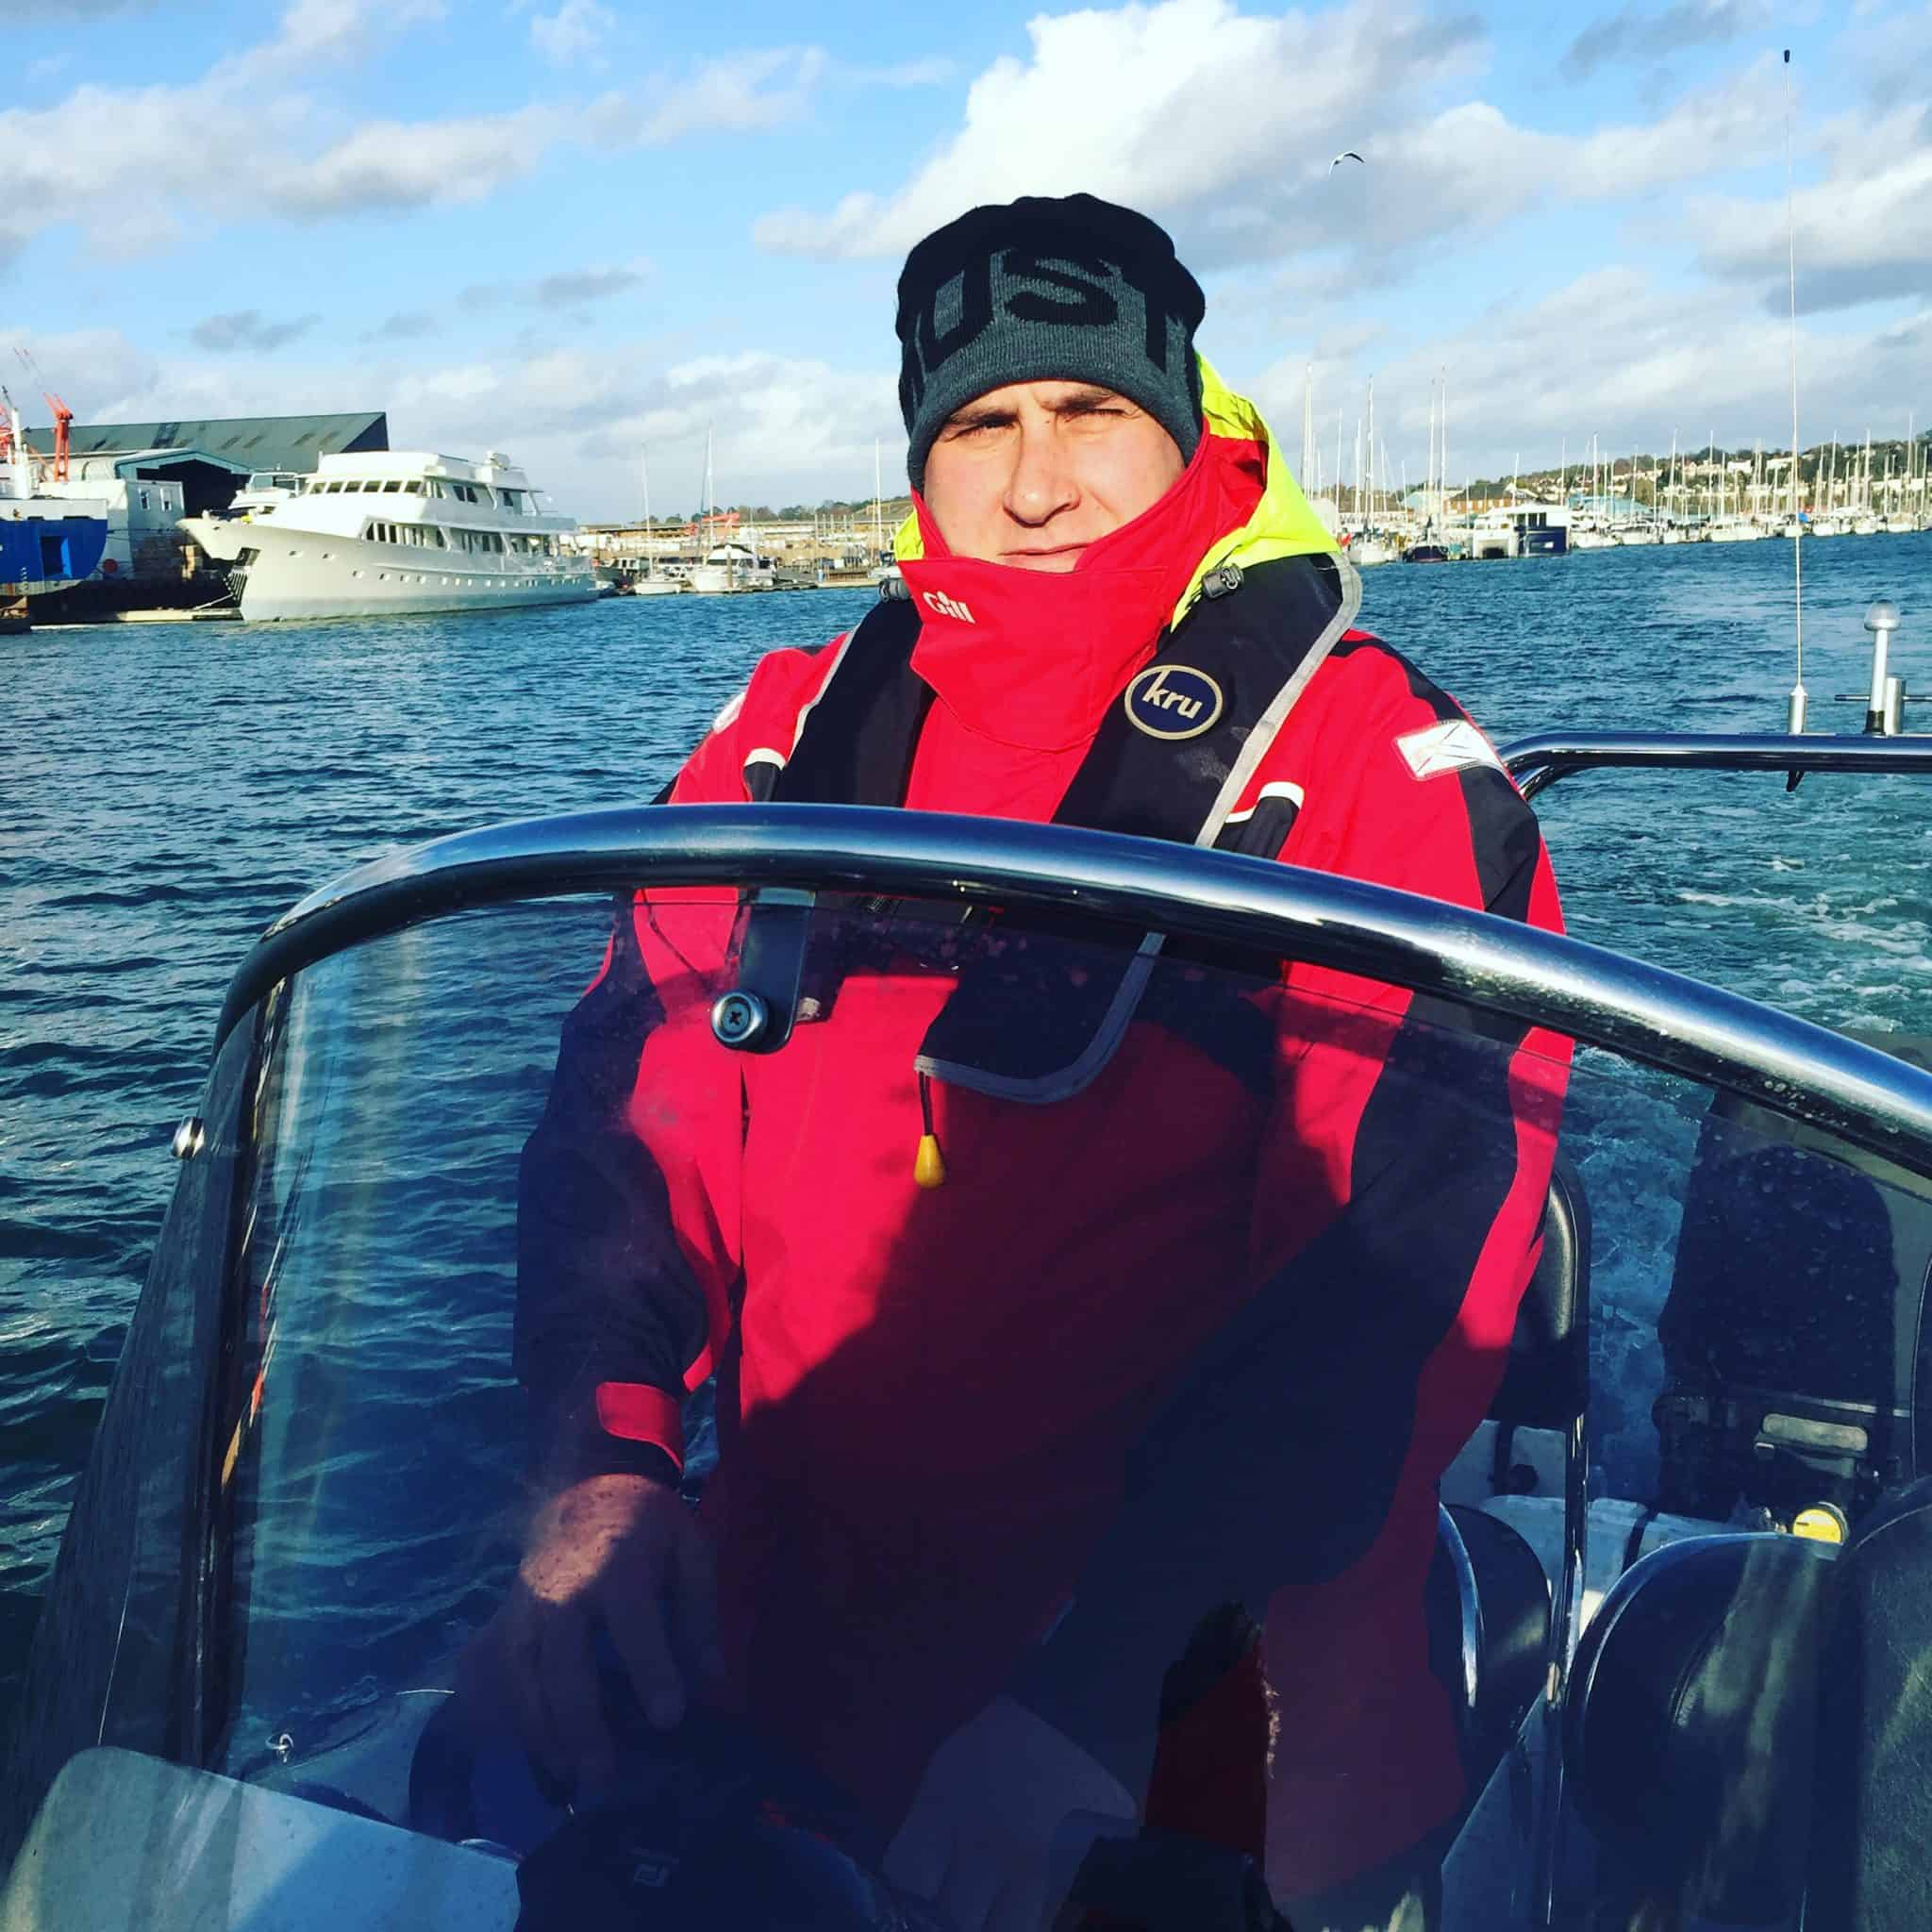 RYA MCA Advanced course - man in red waterproofs driving a powerboat in the sun